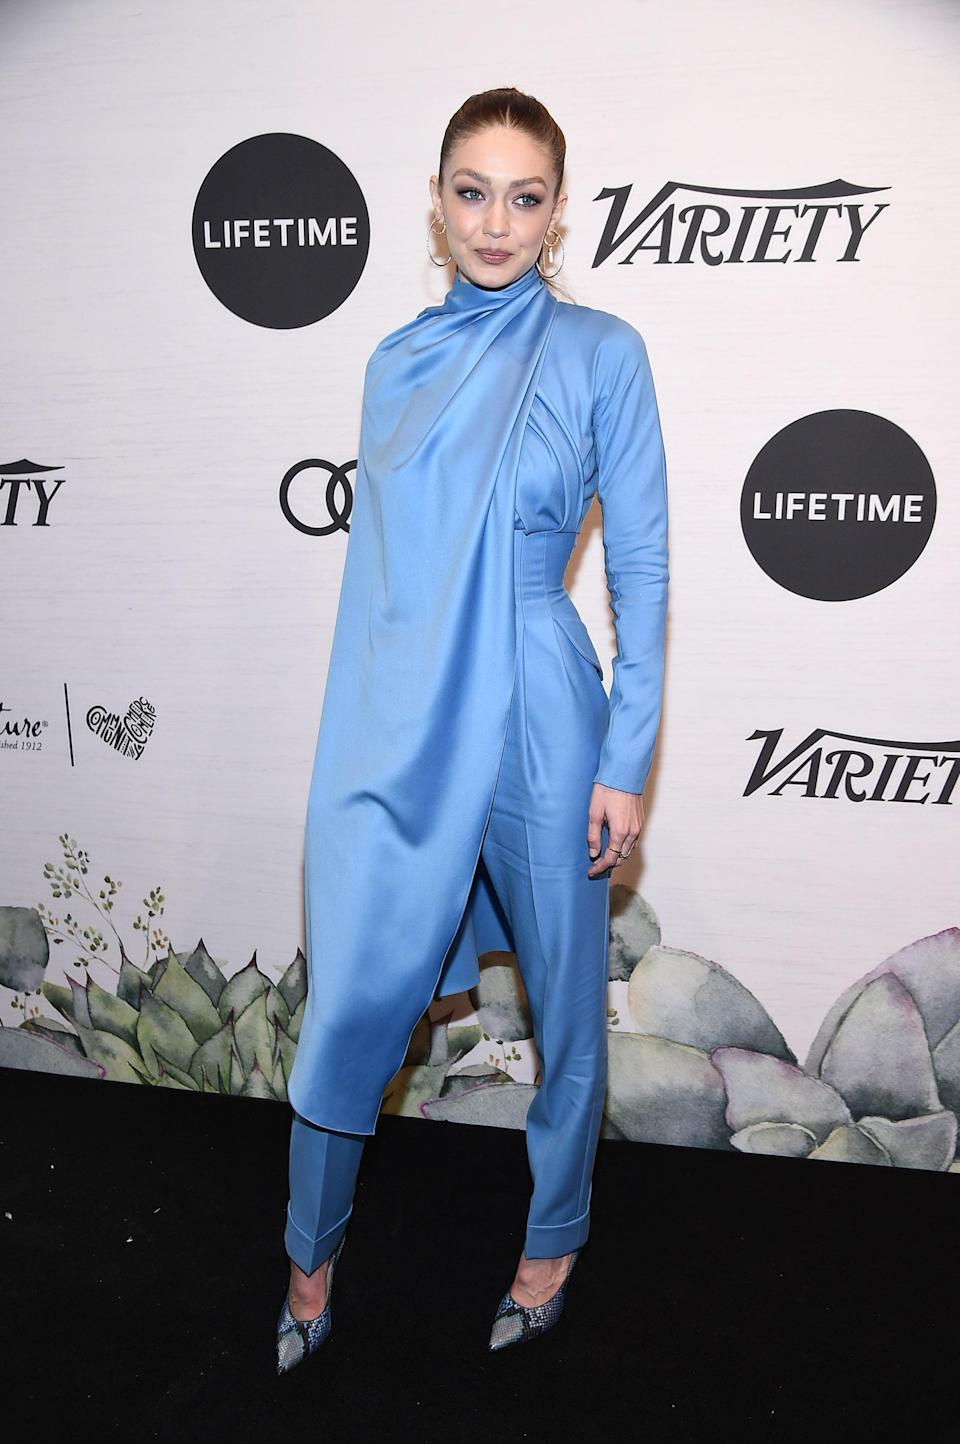 While not all heroes wear capes, we sure do appreciate it when they do — <em>especially</em> when they look as good as Gigi does in this powder-blue asymmetrical caped jumpsuit by British designer Emilia Wickstead. Avengers, take notes!